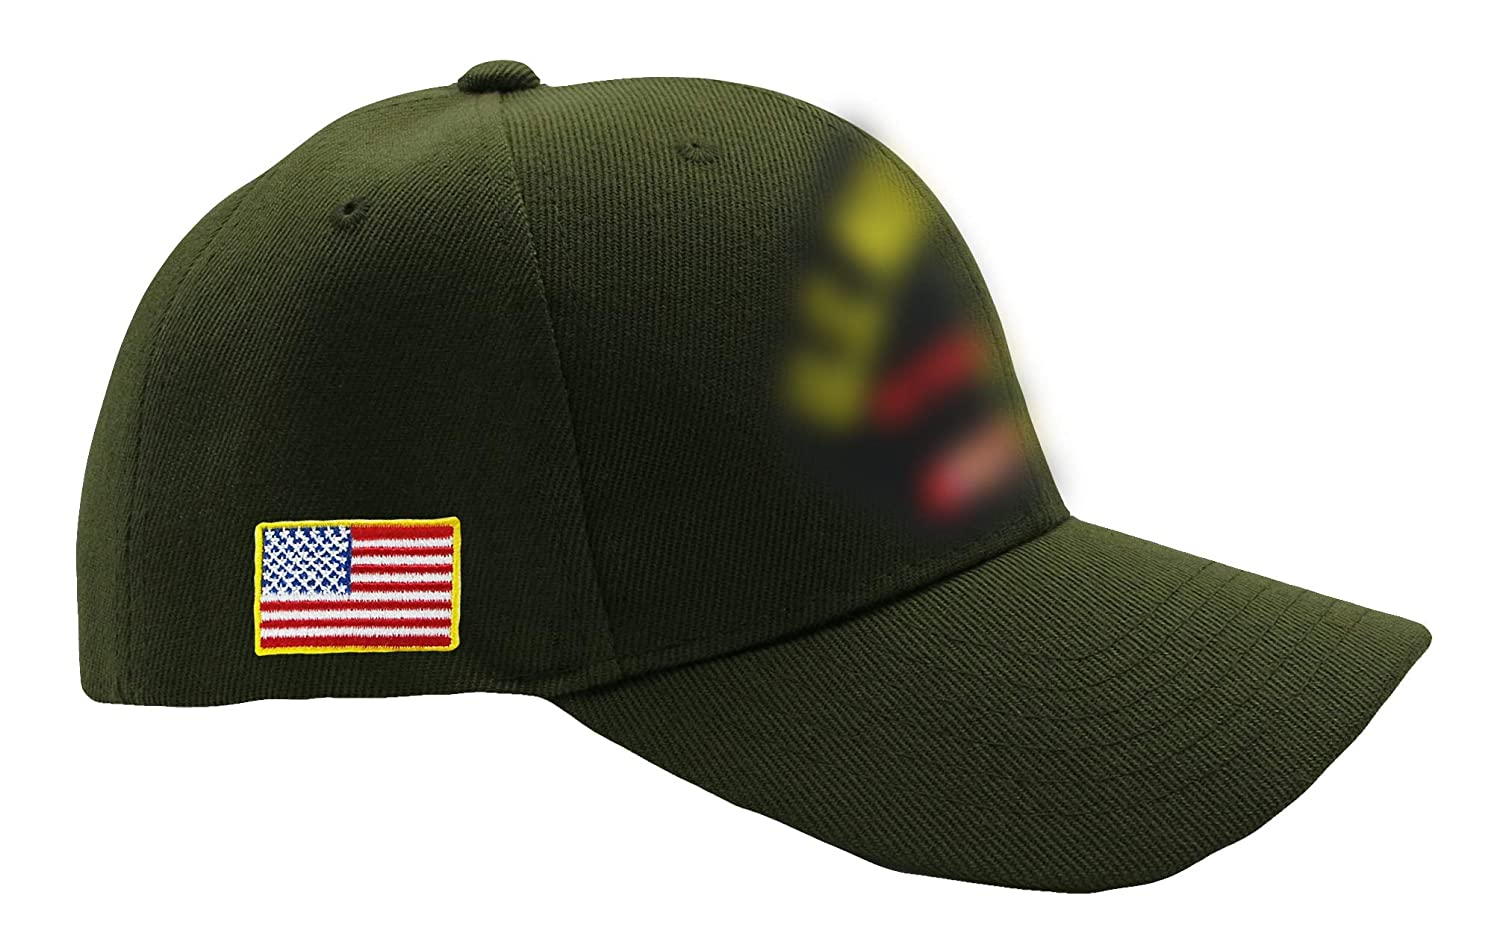 Patchtown US Army Veteran Hat//Ballcap Adjustable-Back One Size Fits Most